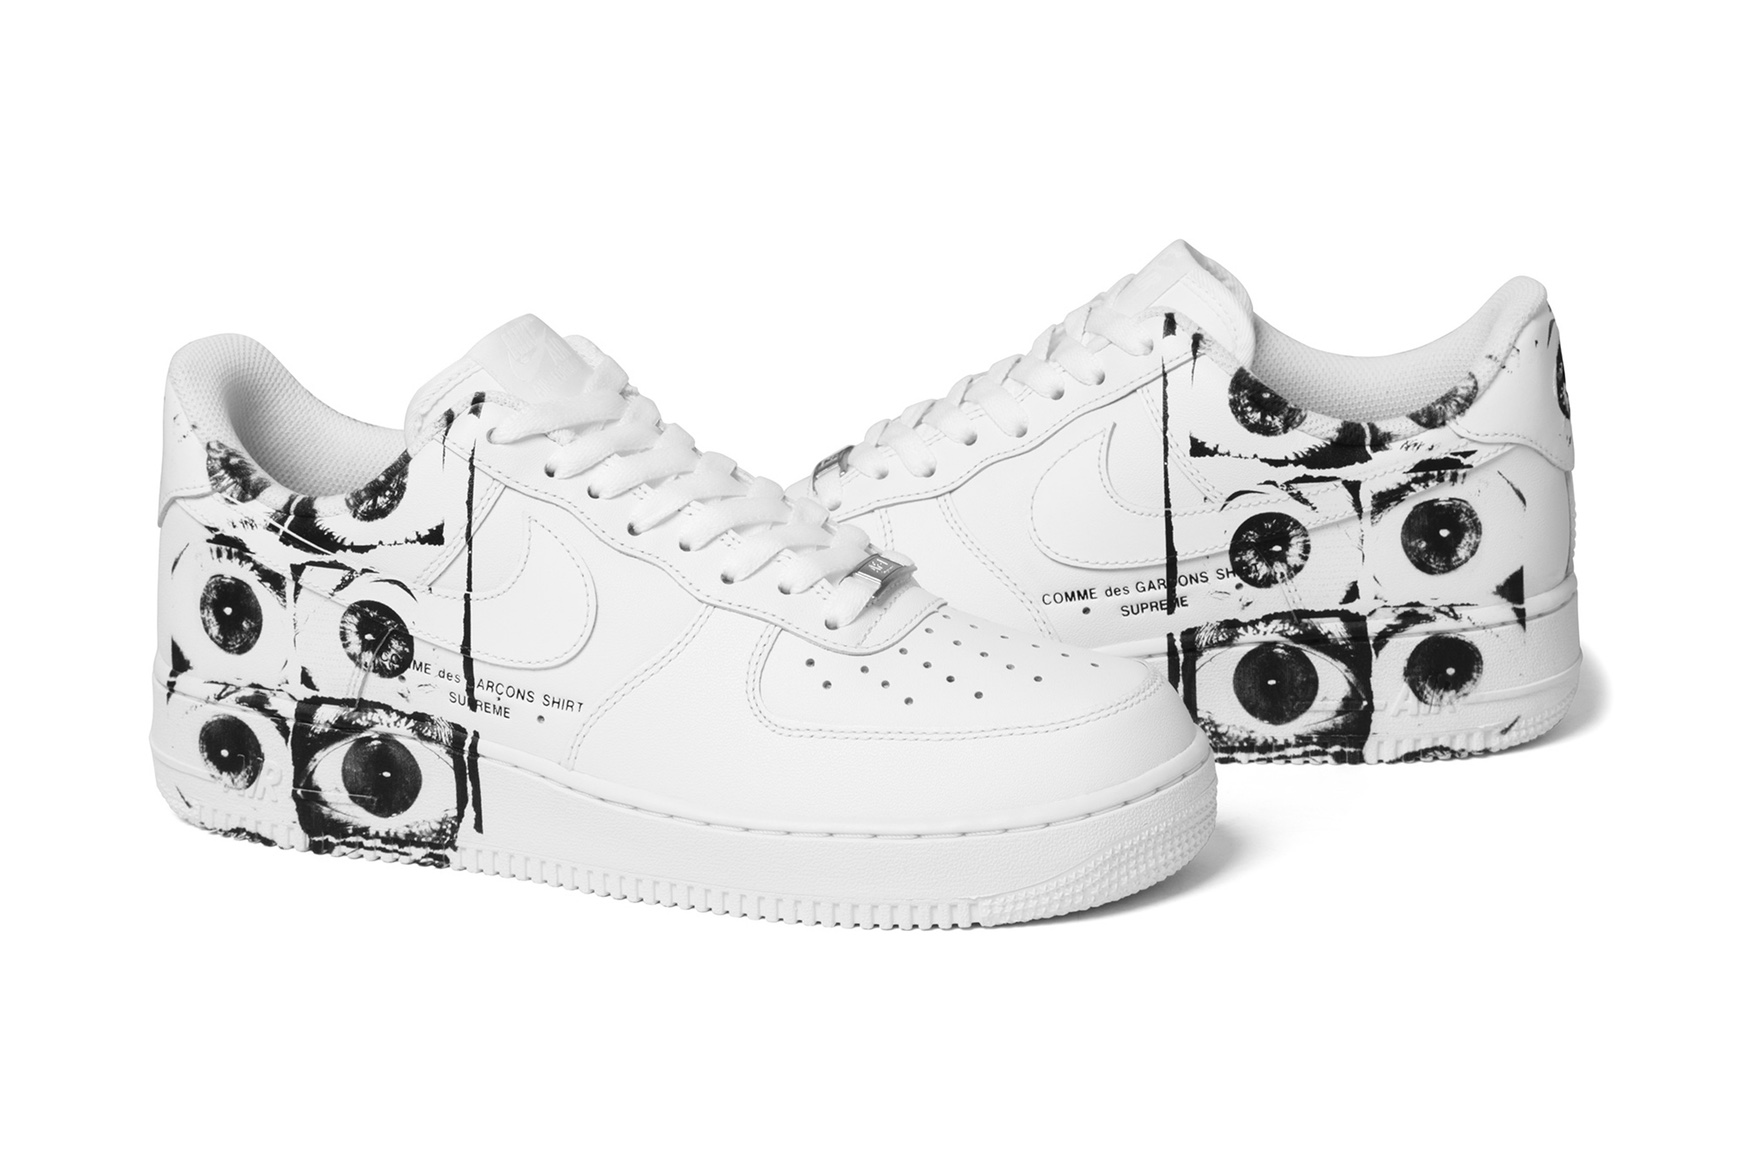 http---hypebeast.com-image-2017-05-supreme-cdg-nike-air-force-1-low-release-info-101